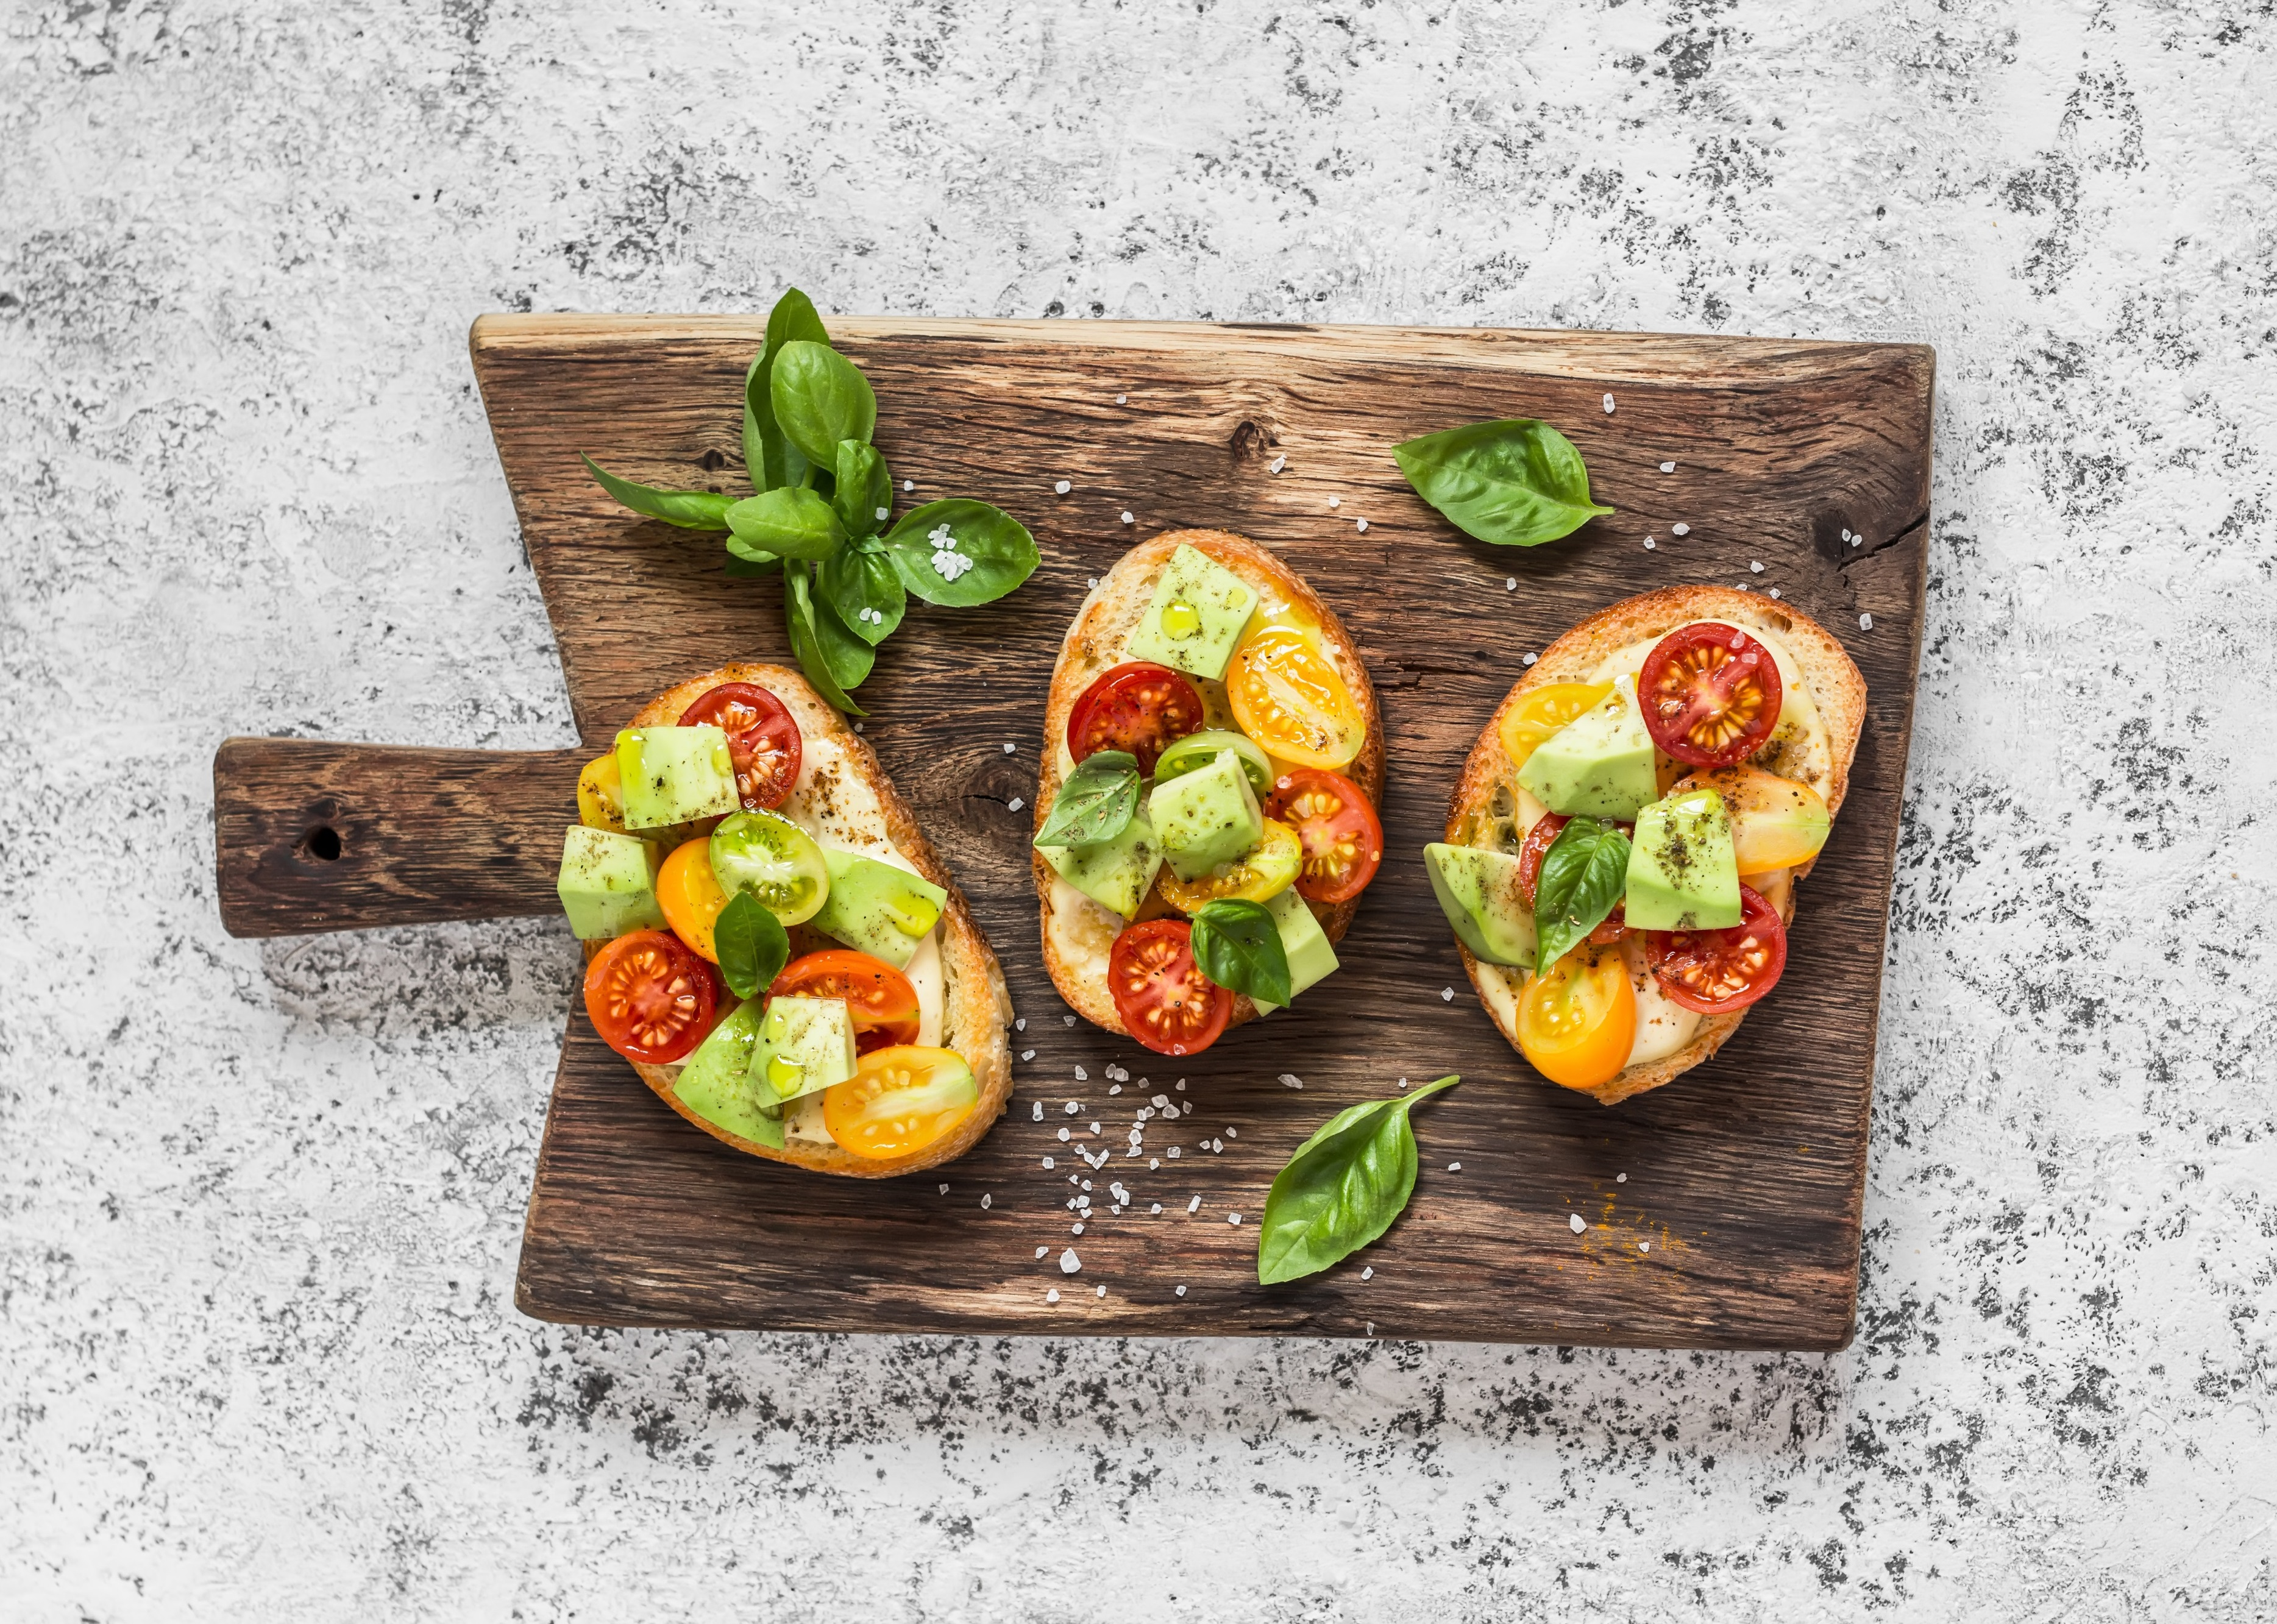 Bruschetta with tomatoes and avocado on rustic wooden cutting board. Delicious snack or appetizer to wine